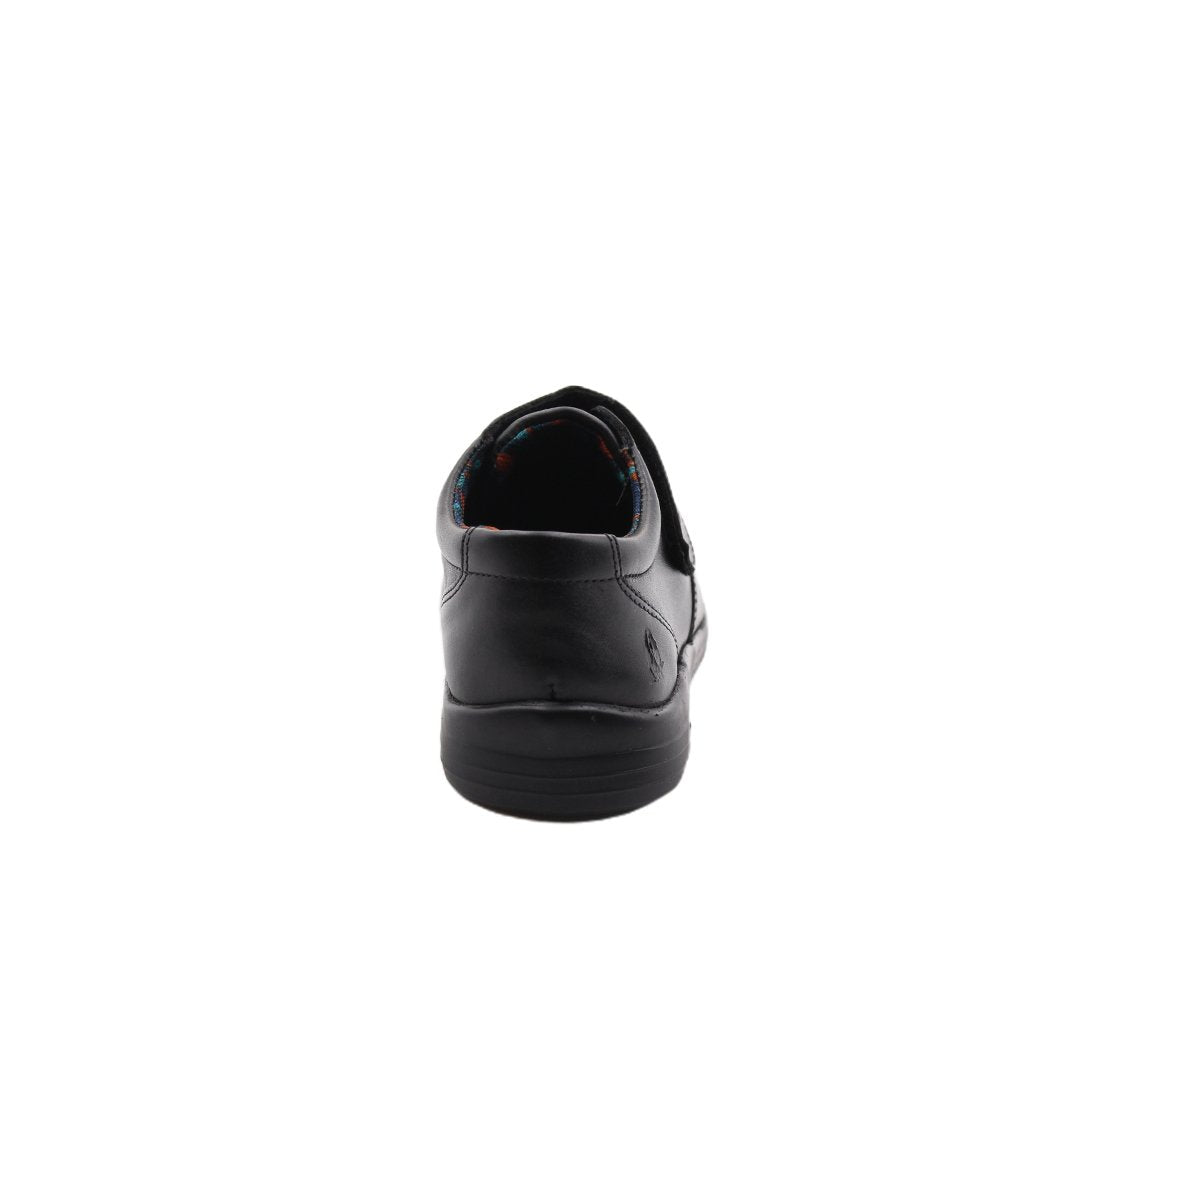 zapato escolar luka vel hp - color negro, 349.99, all day comfort, calzado, cuero, temporada 5, hush puppies, negro, nino, ninos, precio regular, comprar, en linea, online, delivery, guatemala, zapatos, hush puppies